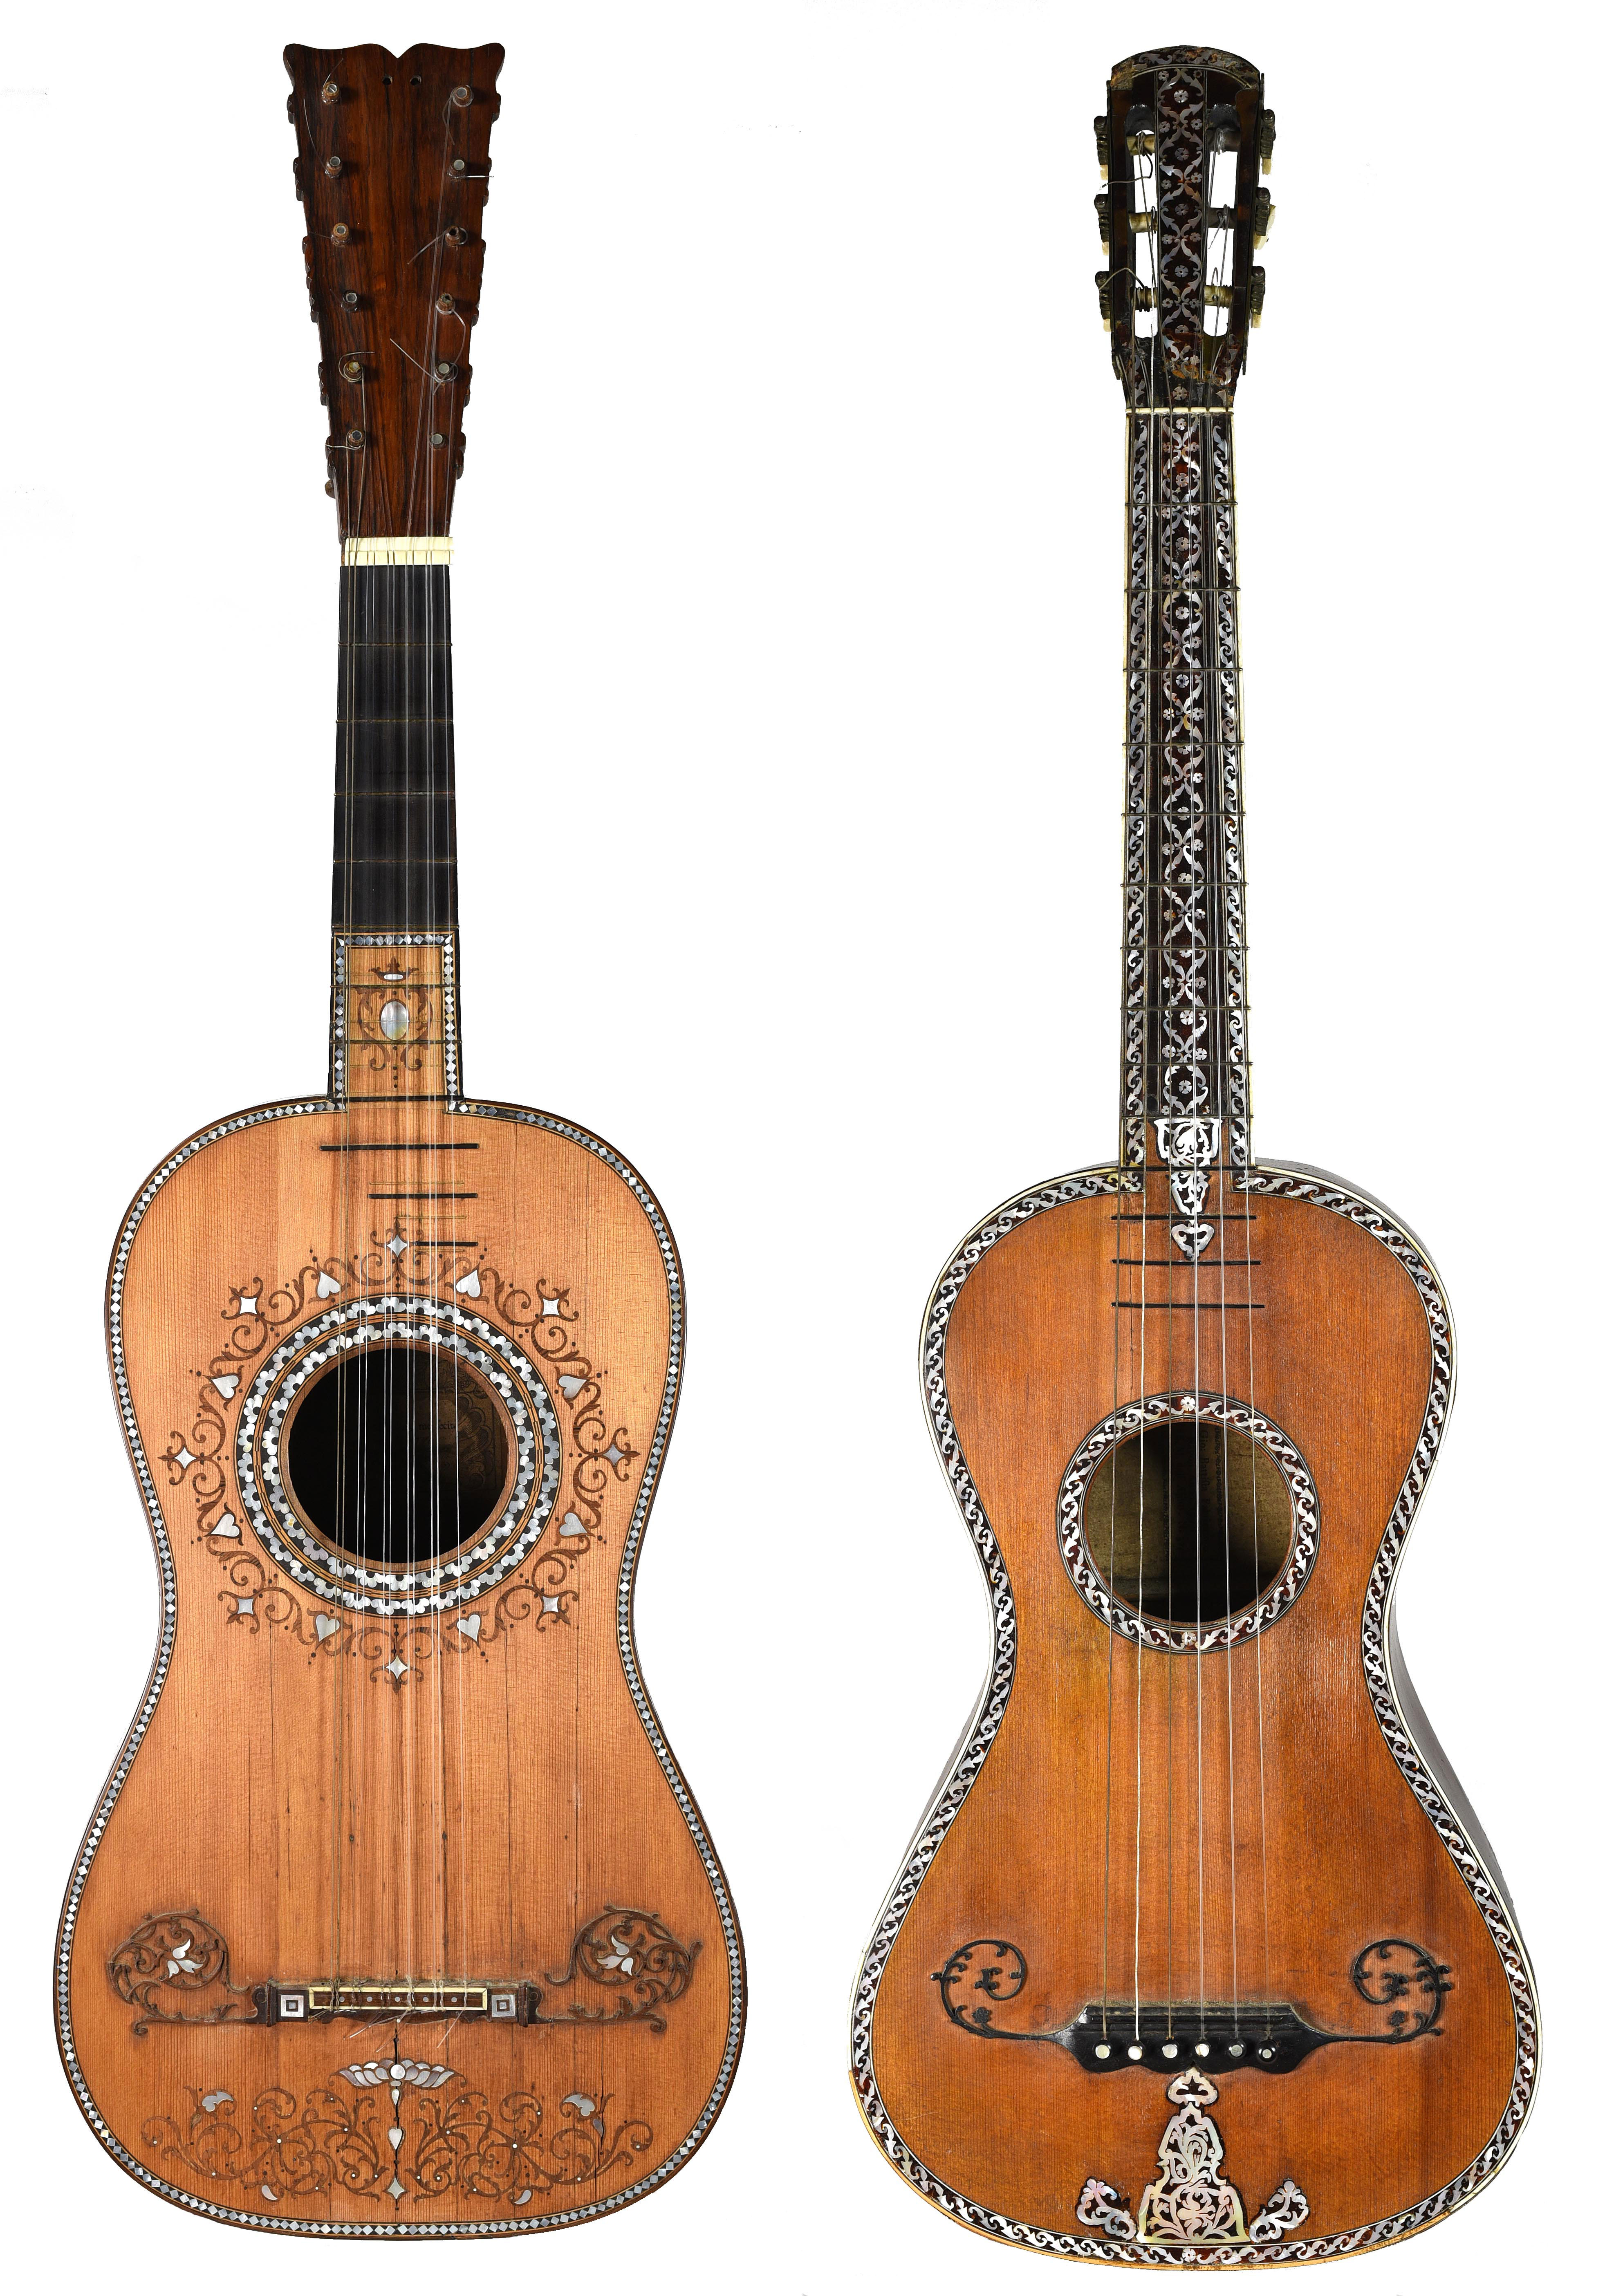 Guitars from the Harvey Hope collection